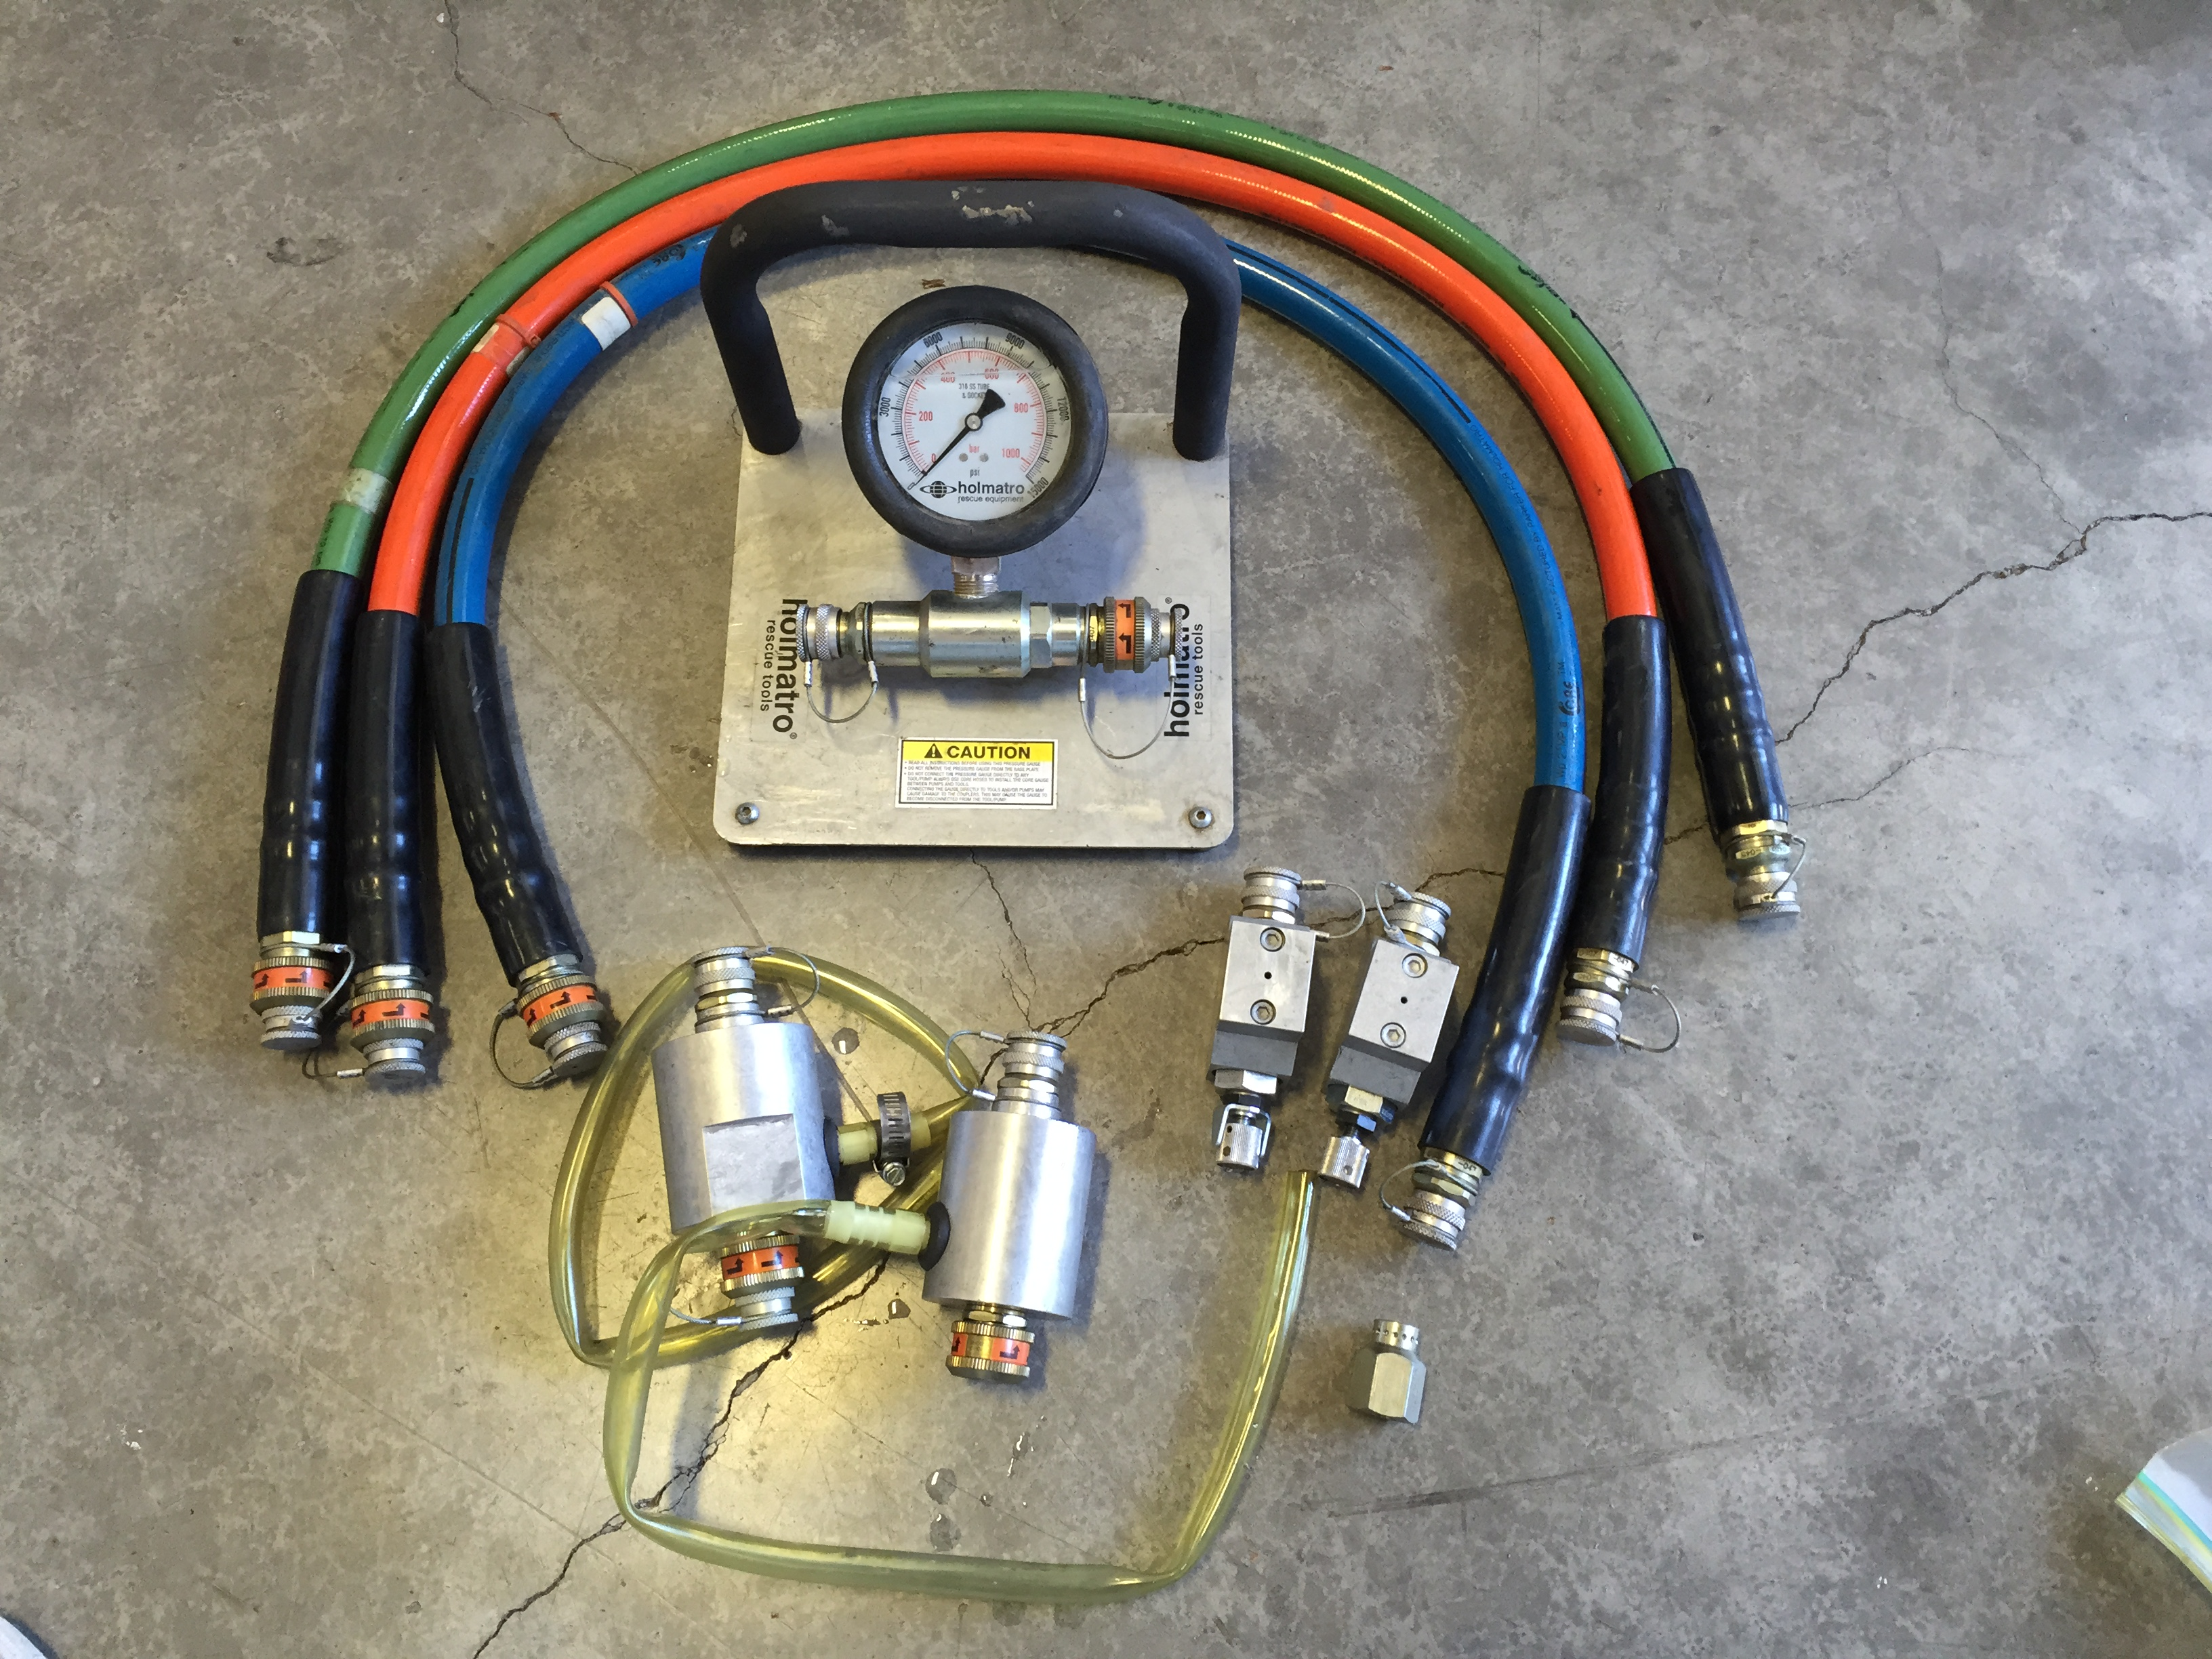 FOR SALE: Holmatro Rescue Tool Parts & Testing Equipment | Santiam